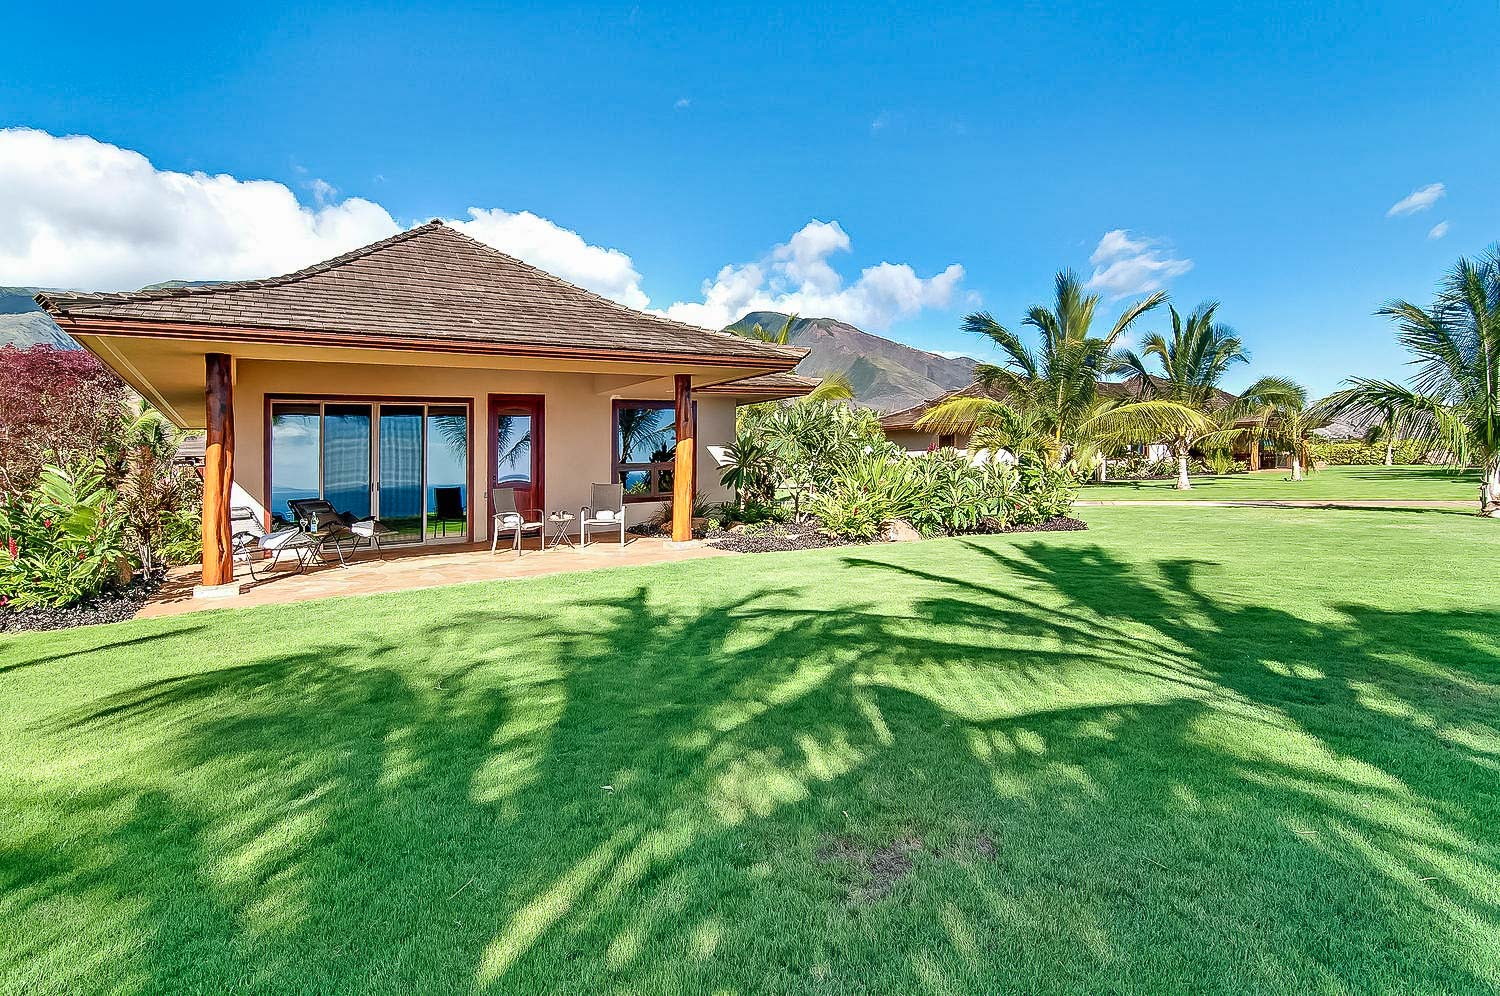 Pacific View 6 Bedroom 5 Bath Lahaina, Maui, Hawaii photo 8411331